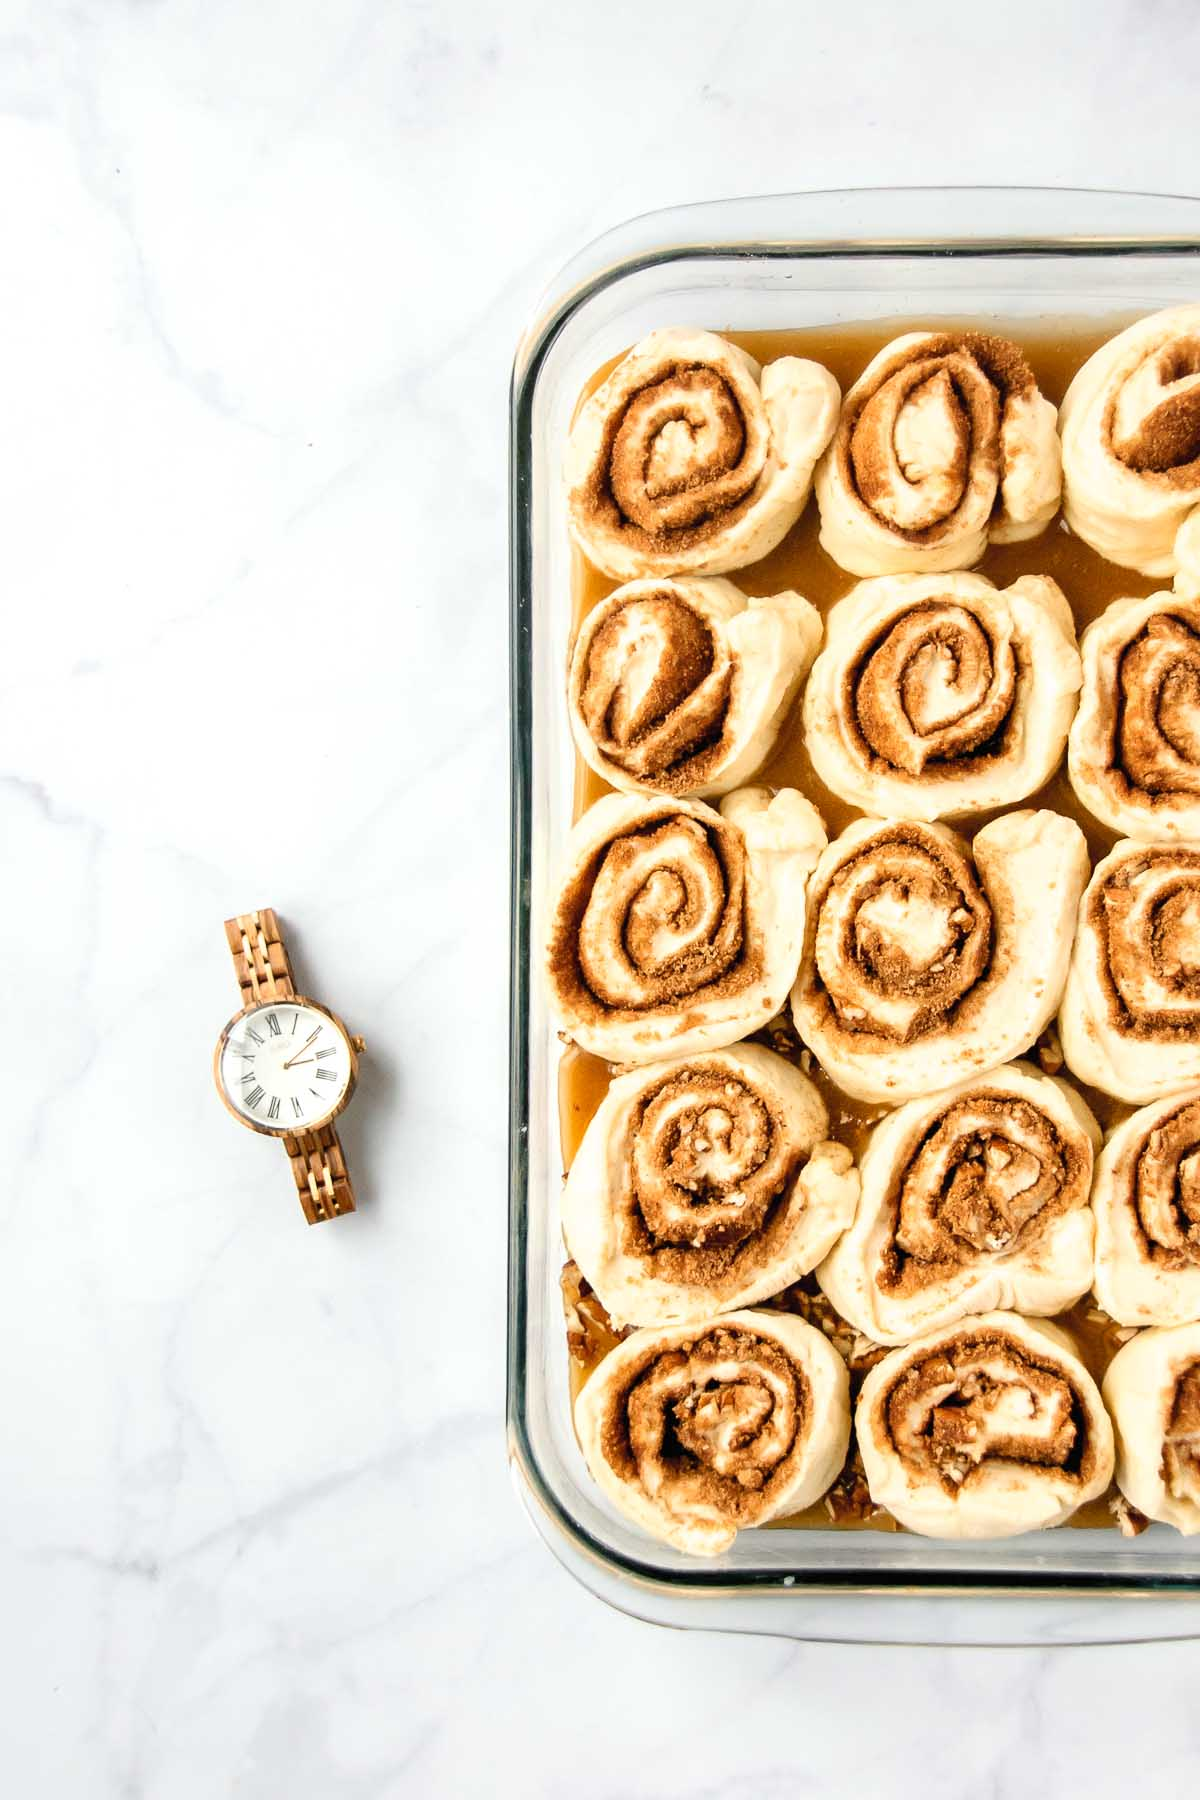 Cinnamon rolls in abaking dish before proofing beside a JORD wood watch.